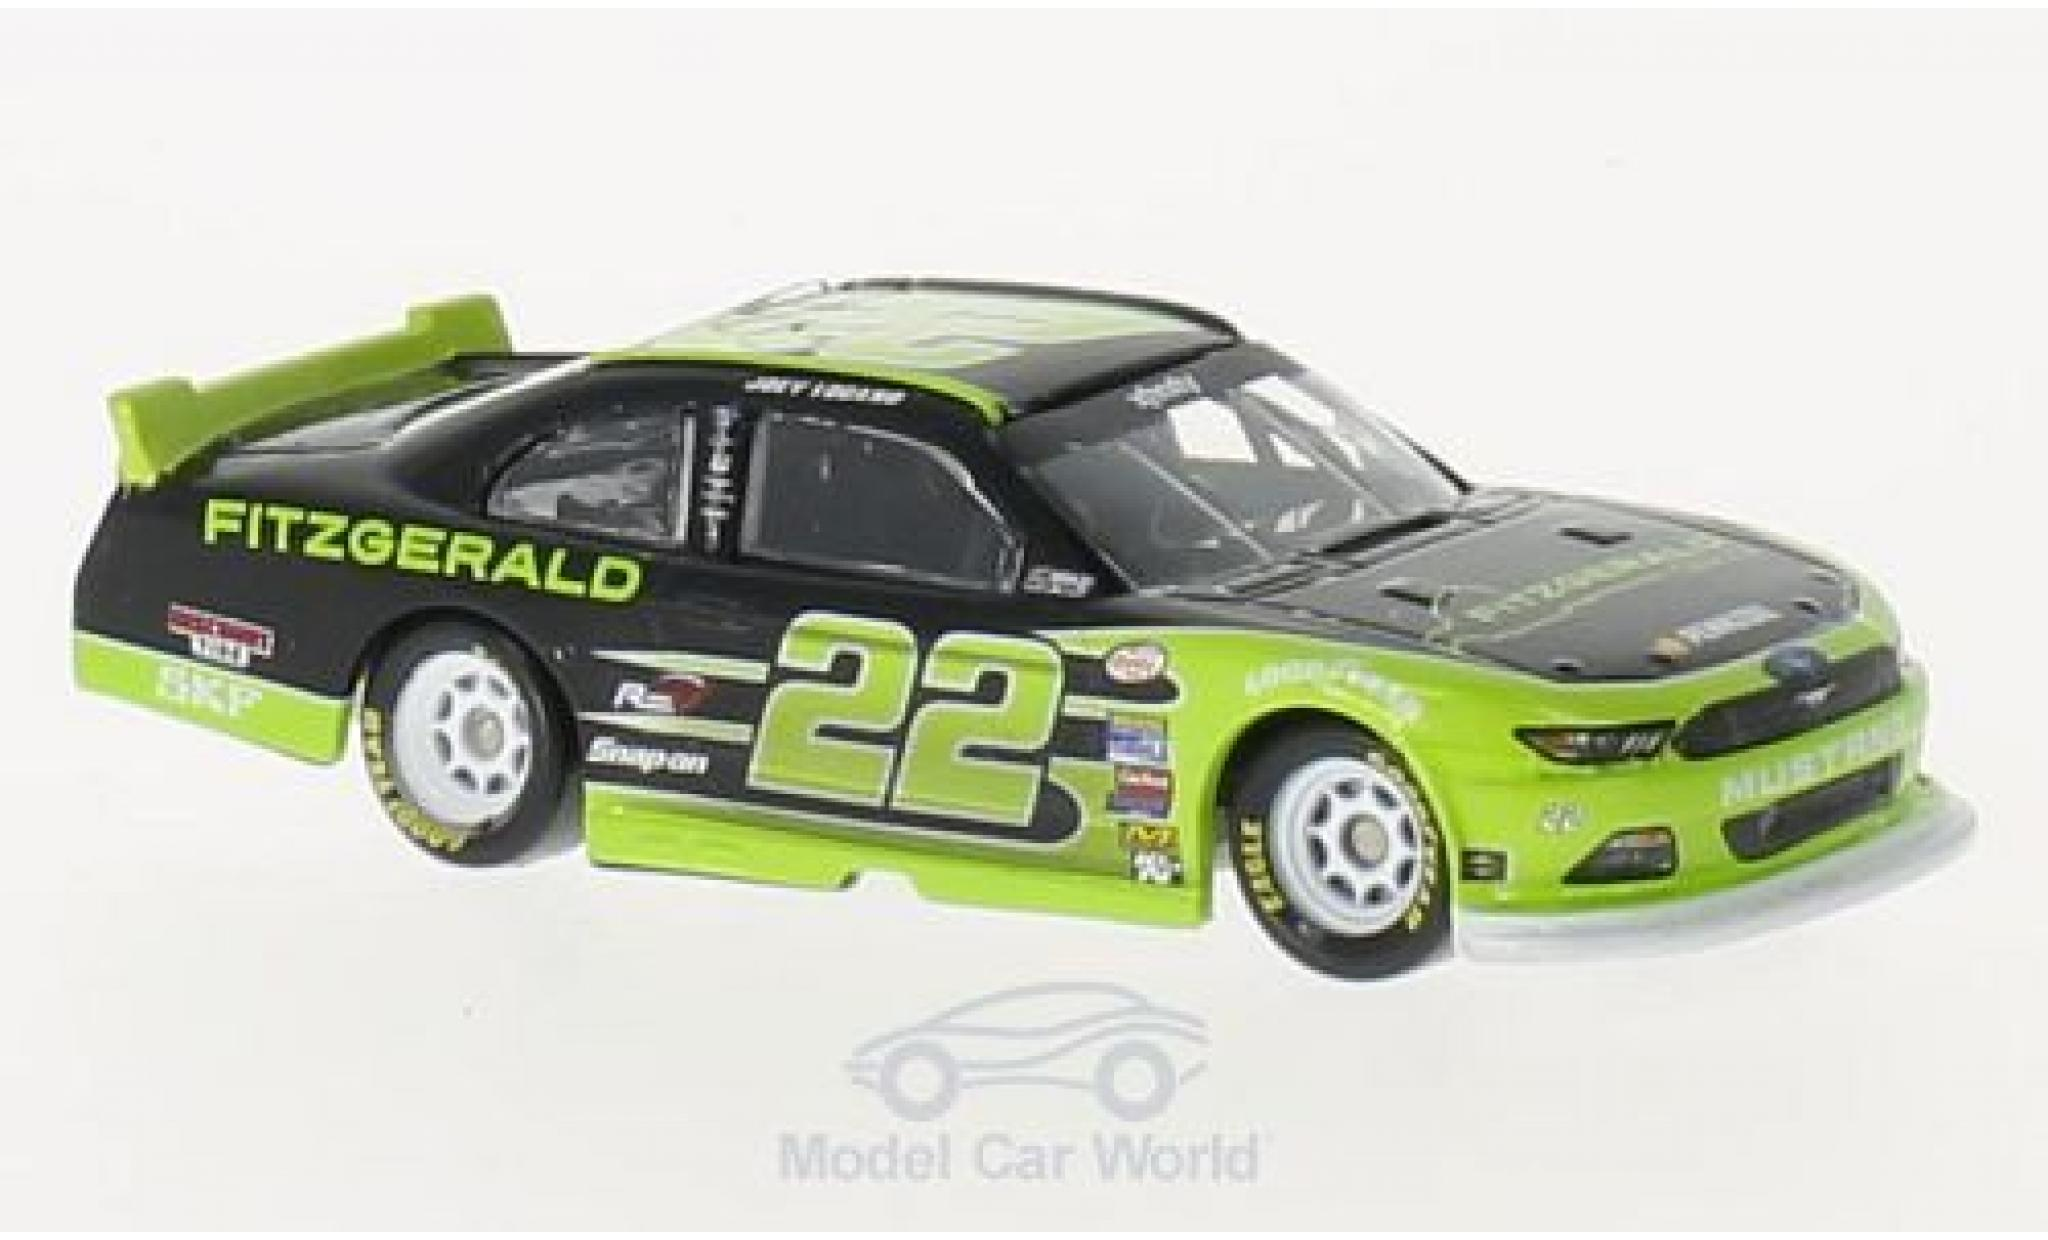 Ford Mustang 1/64 Lionel Racing No.22 Fitzgerald Nascar 2016 J.Logano